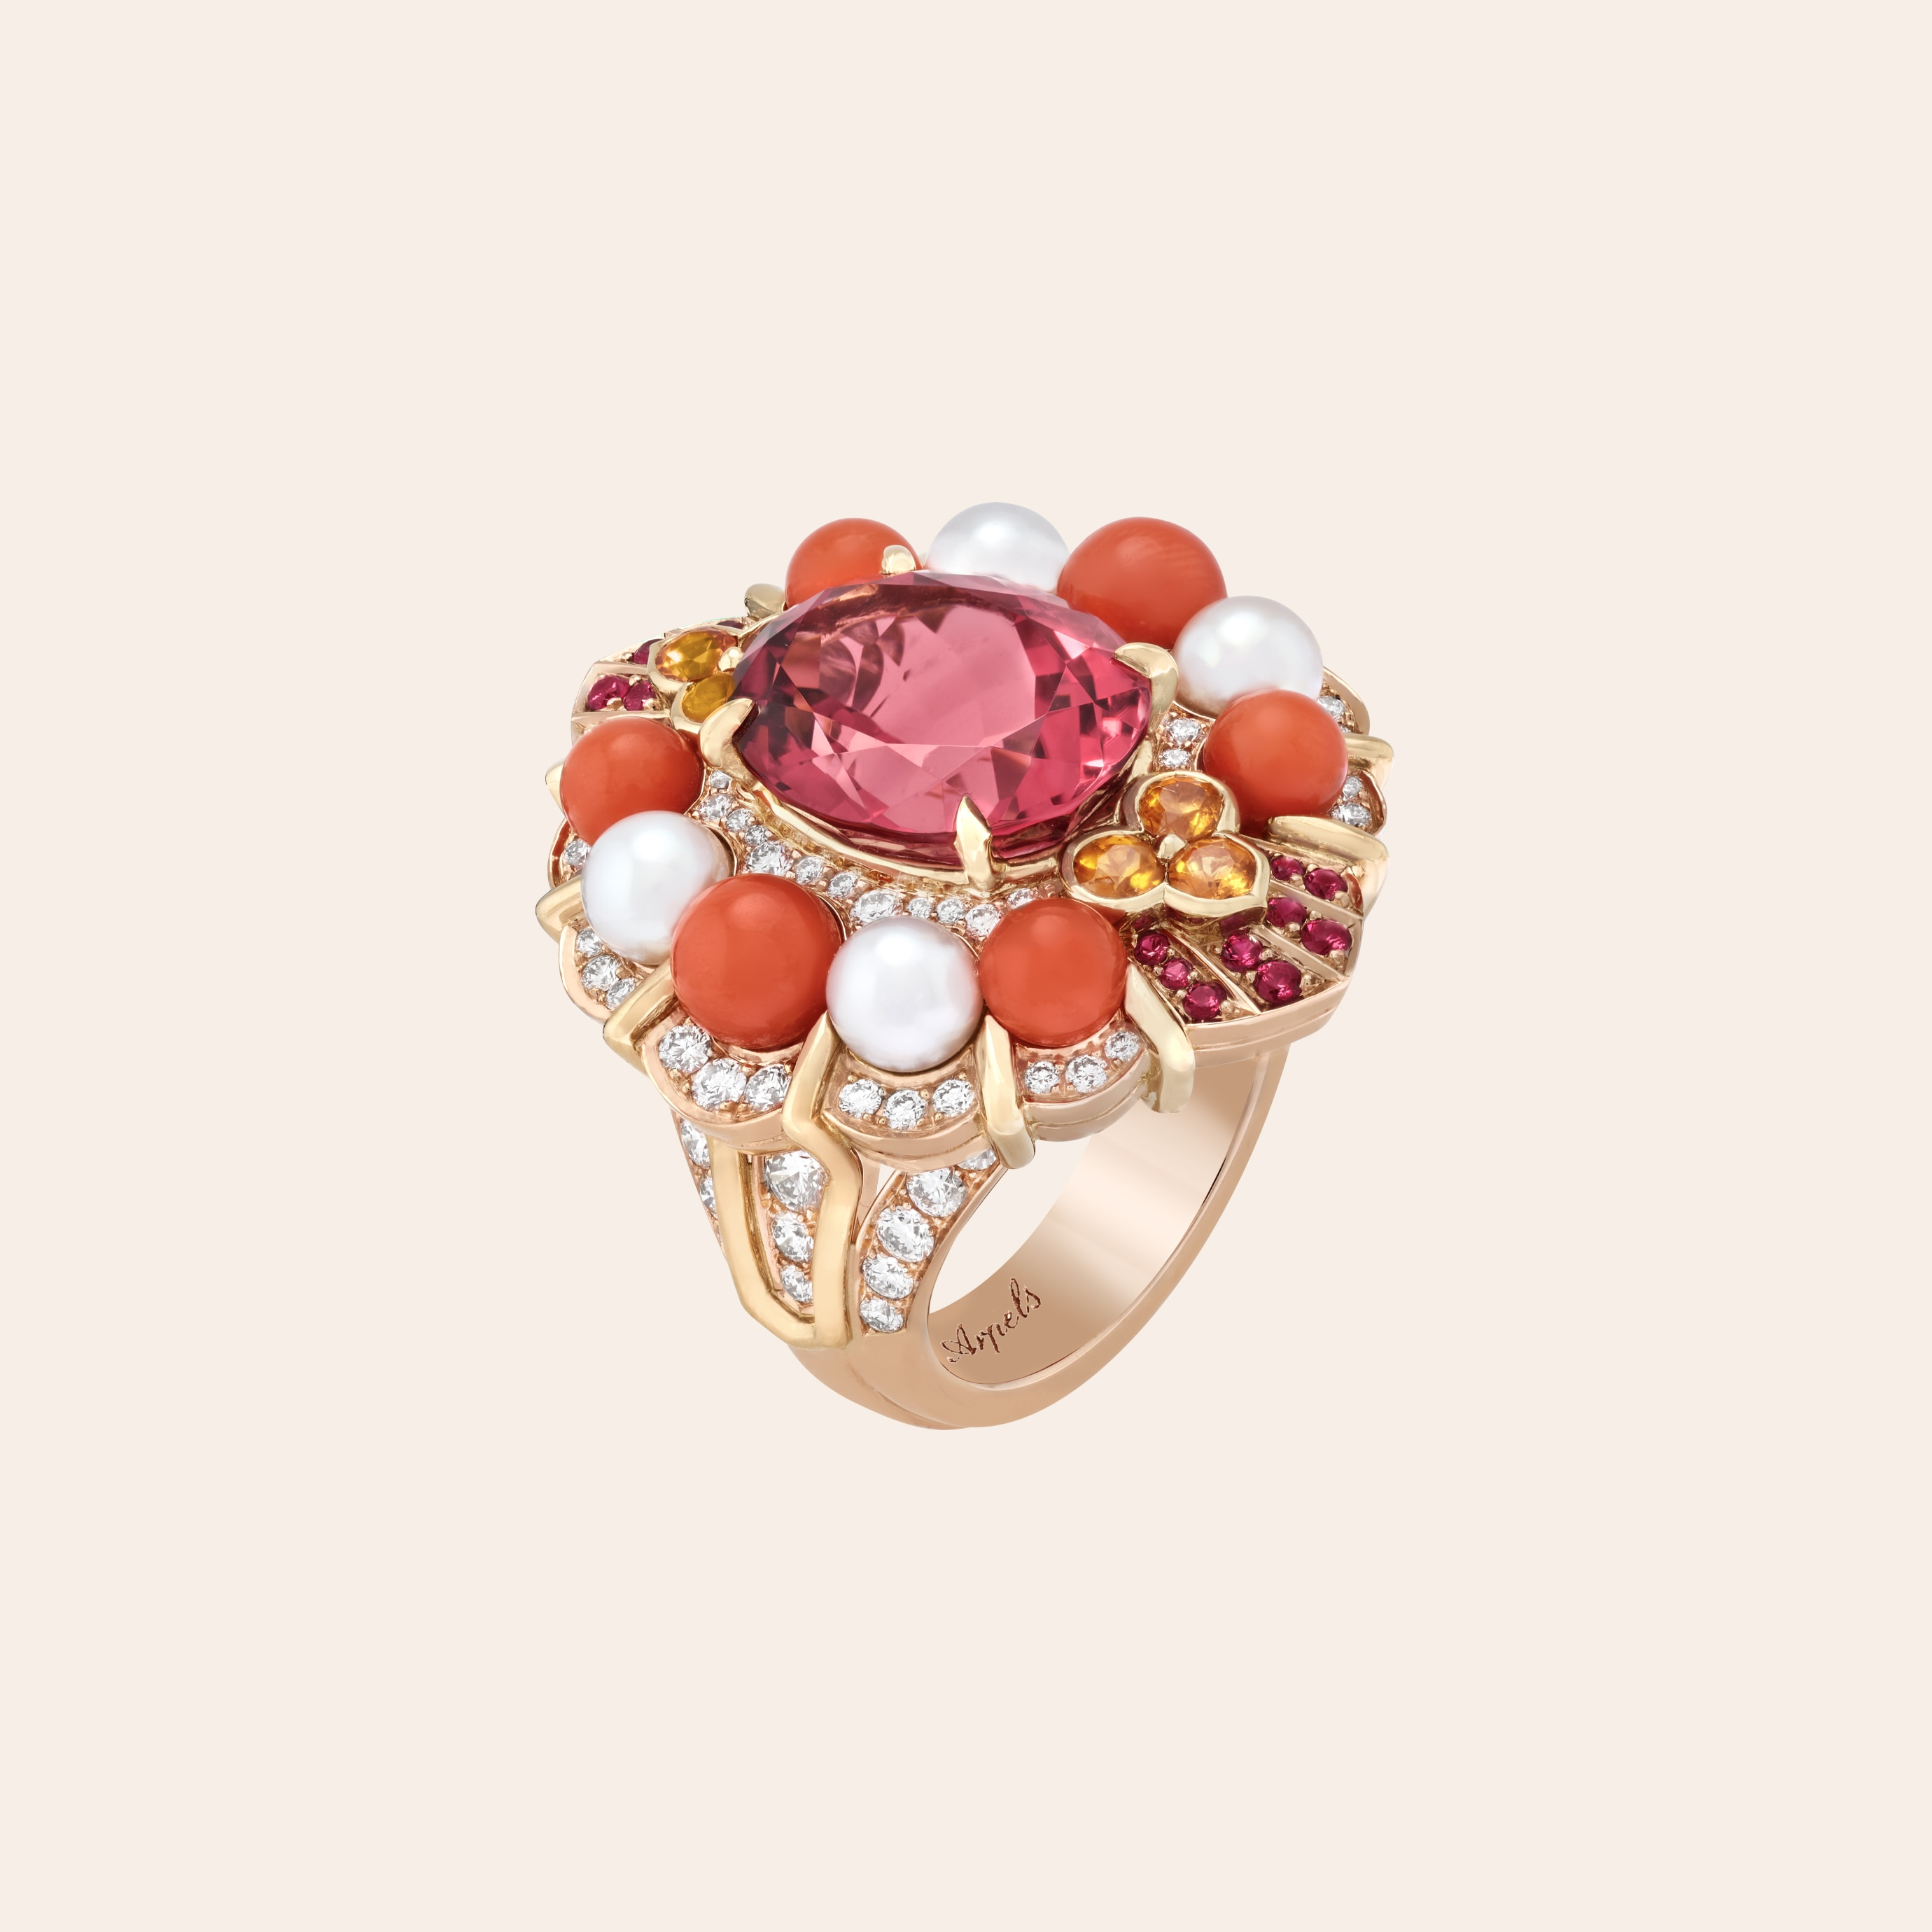 Sentimenti ring, Rose gold, yellow gold, one oval-cut pink tourmaline of 6.63 carats, rubies, spessartite garnets, coral, white cultured pearls, diamonds, Romeo & Juliet collection, Van Cleef & Arpels